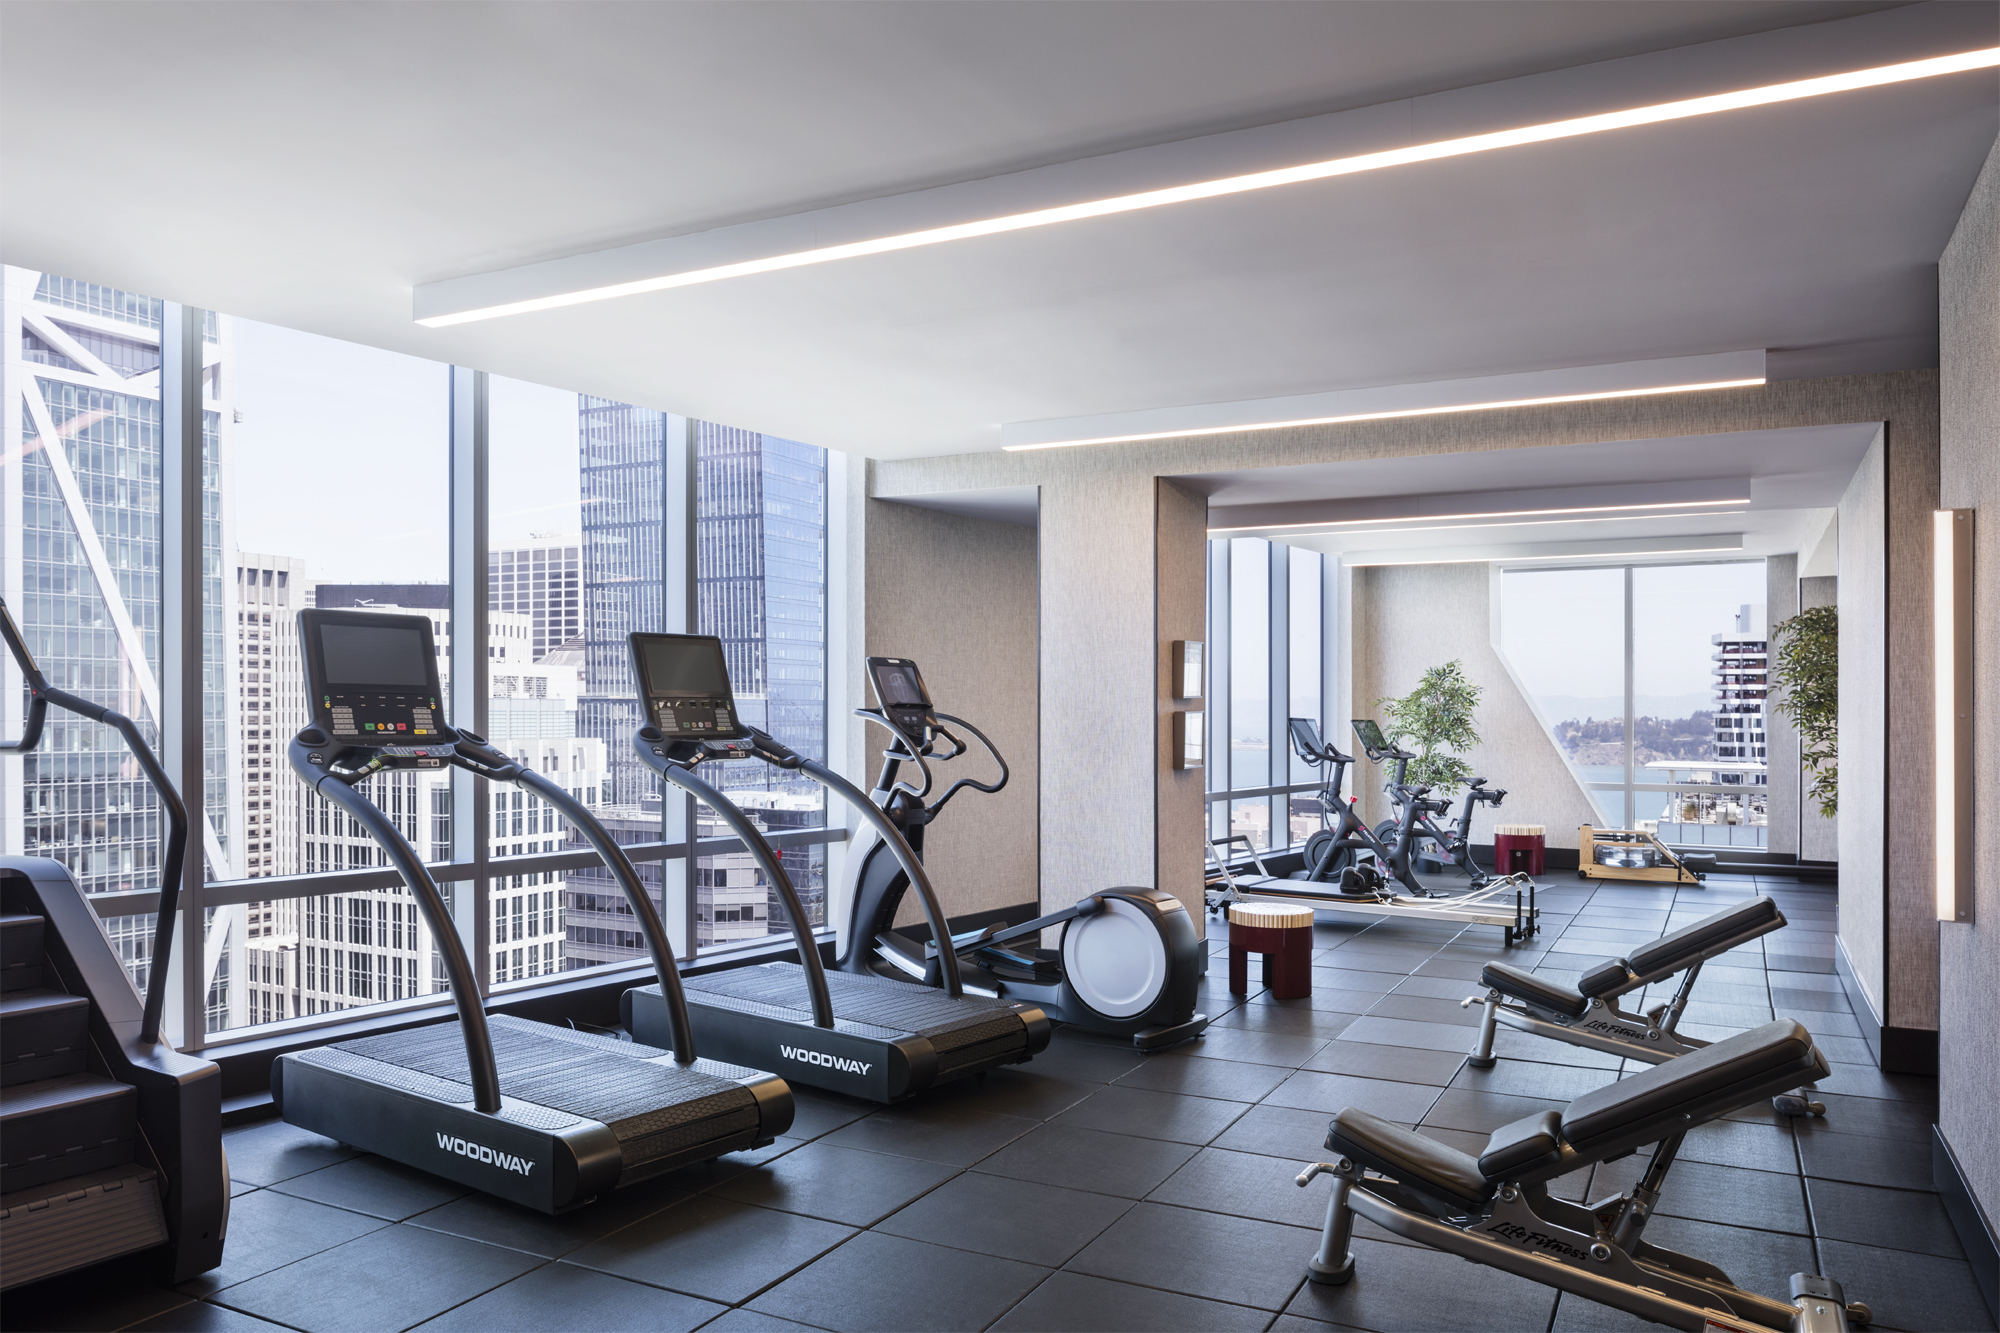 Gym at The Avery luxury condos in San Francisco. Oversized windows lined with treadmills & ellipticals providing city views.